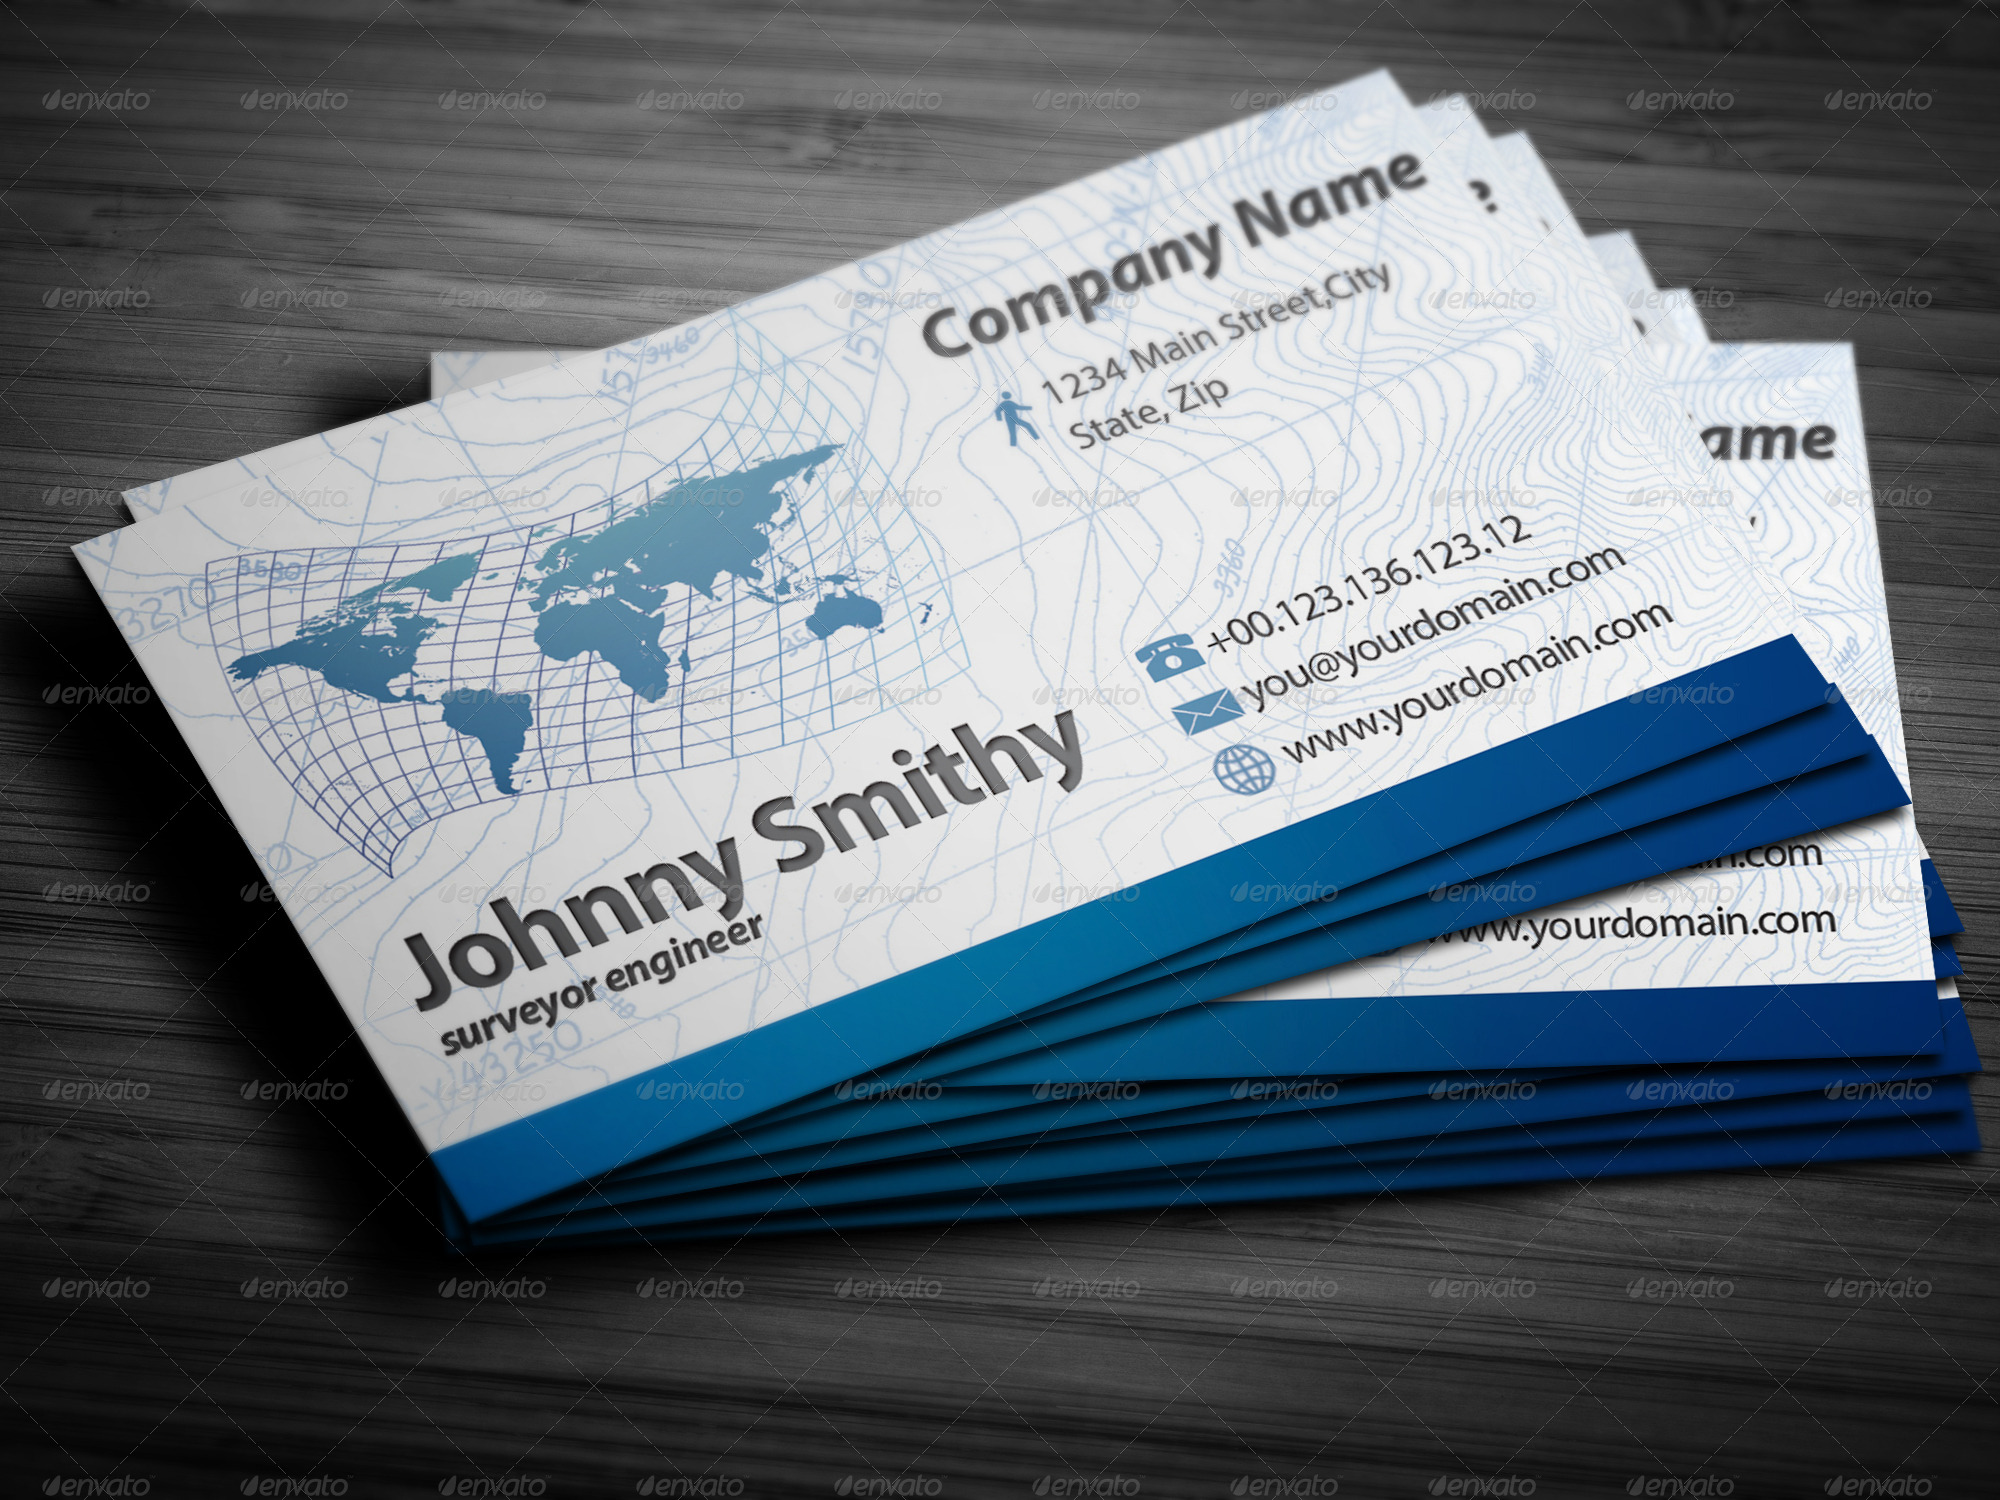 Surveyor business cards by nonerazvan graphicriver surveyor business cards business cards print templates preview image set01frontg reheart Choice Image